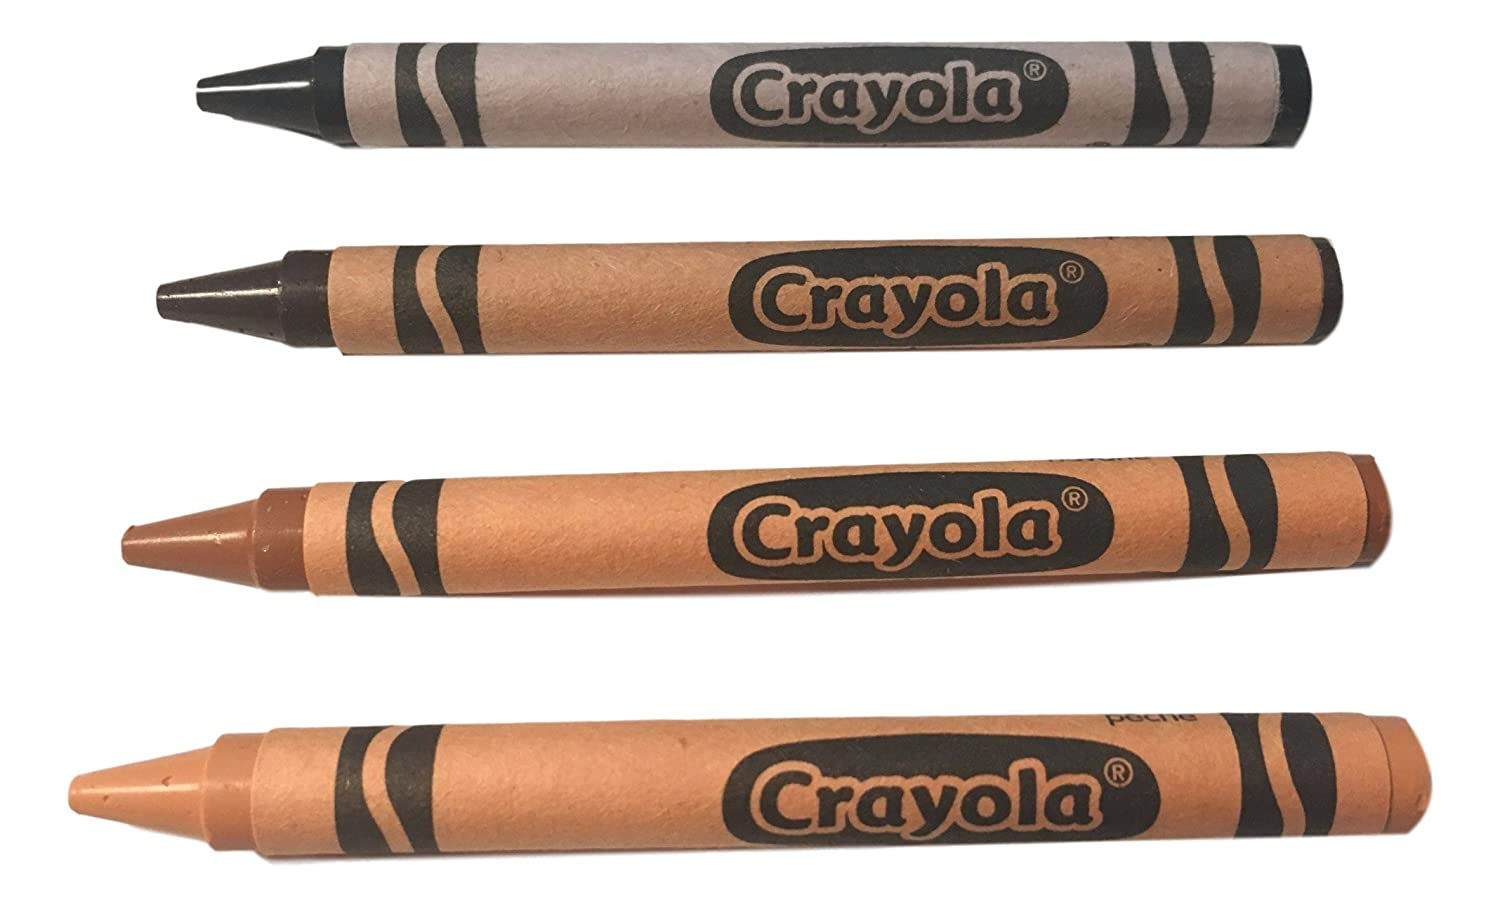 Crayola Multicultural Crayons 4 pack Cellophane Wrapped 40 packs - 160 crayons total